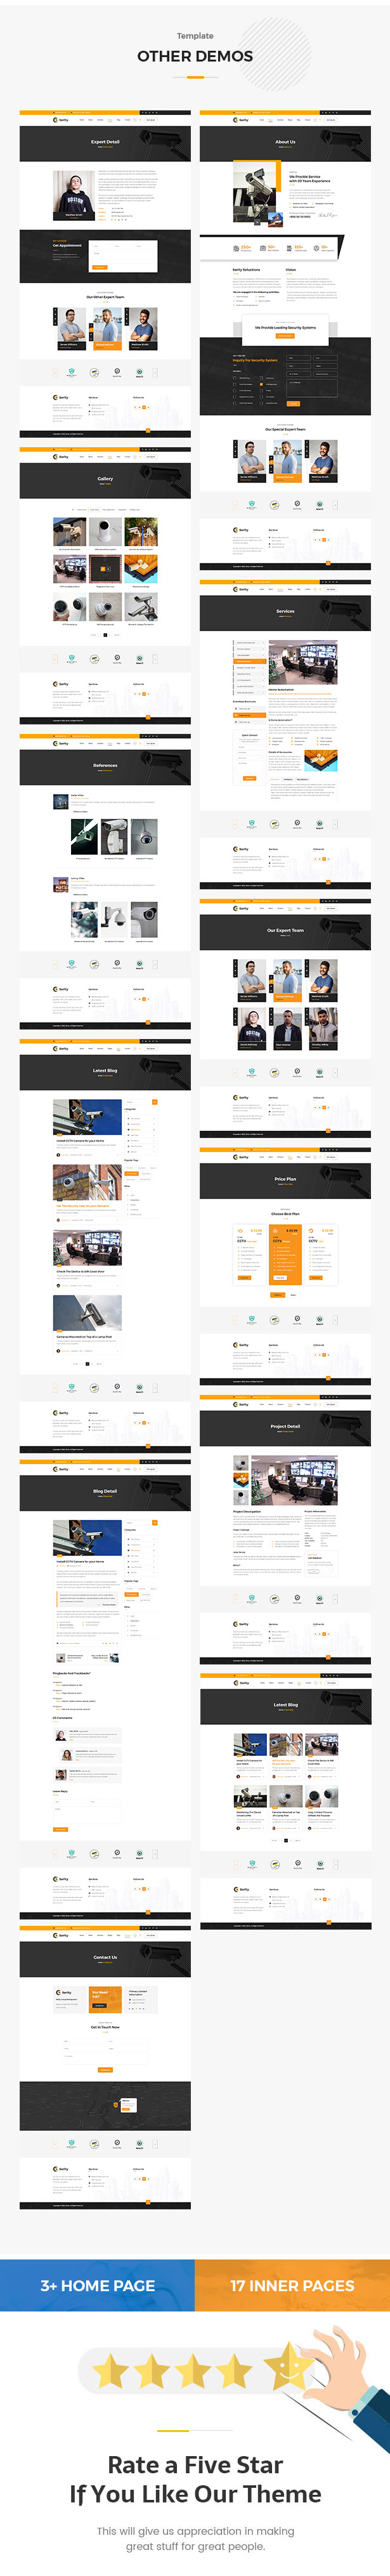 Serity - CCTV and Security Cameras HTML Template - 3